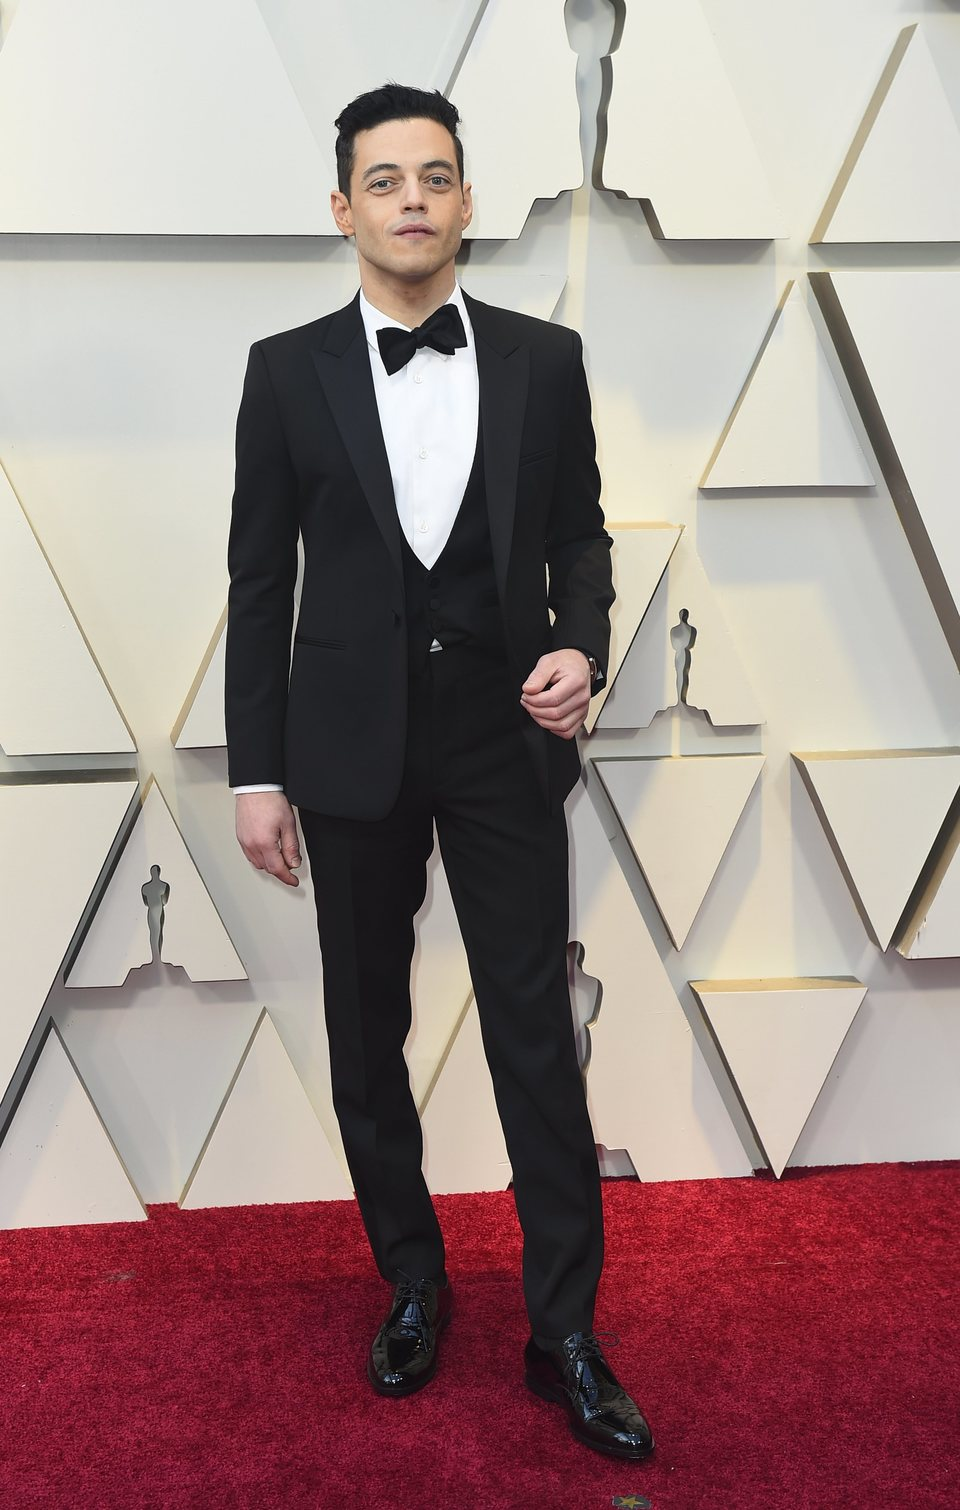 Rami Malek on the red carpet at the Oscars 2019